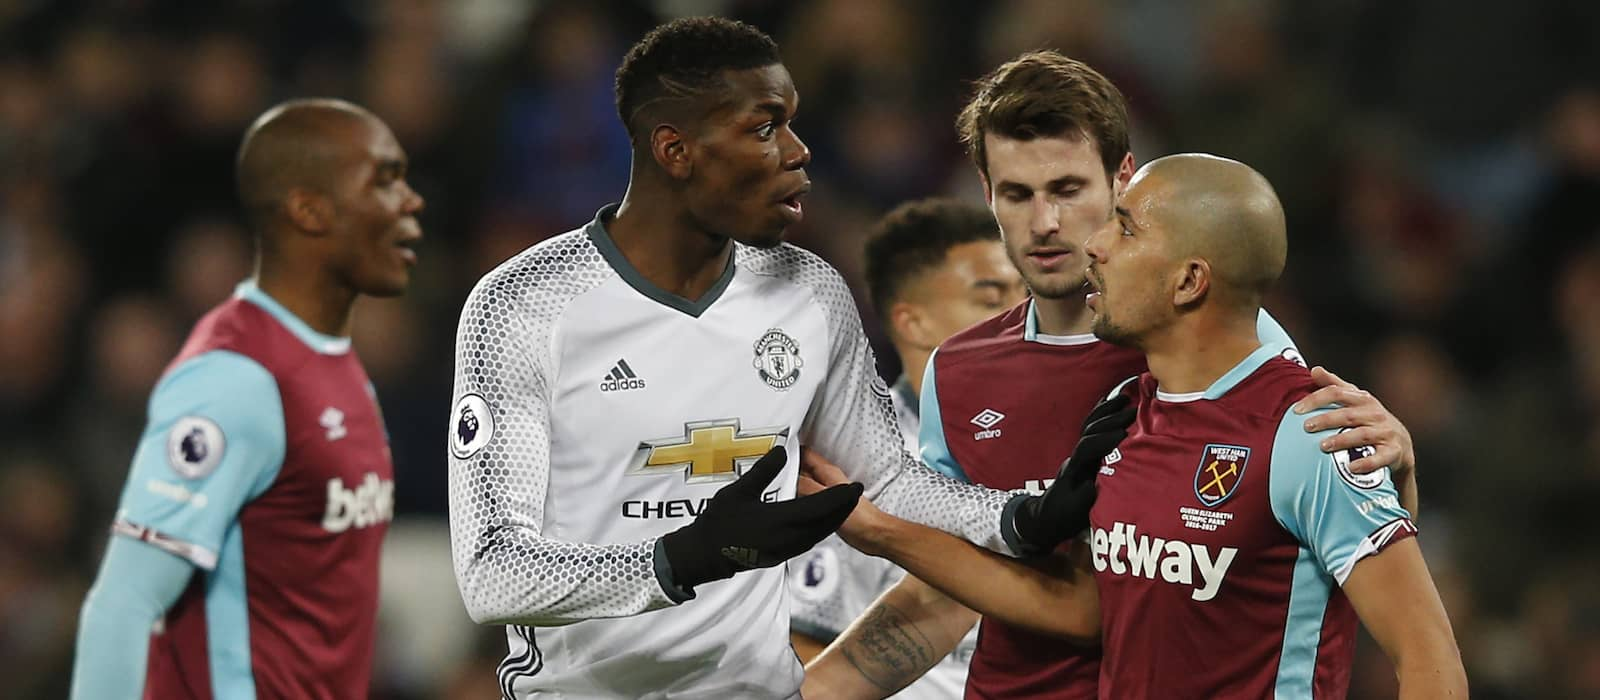 Paul Merson: Manchester United will not beat West Ham United this weekend